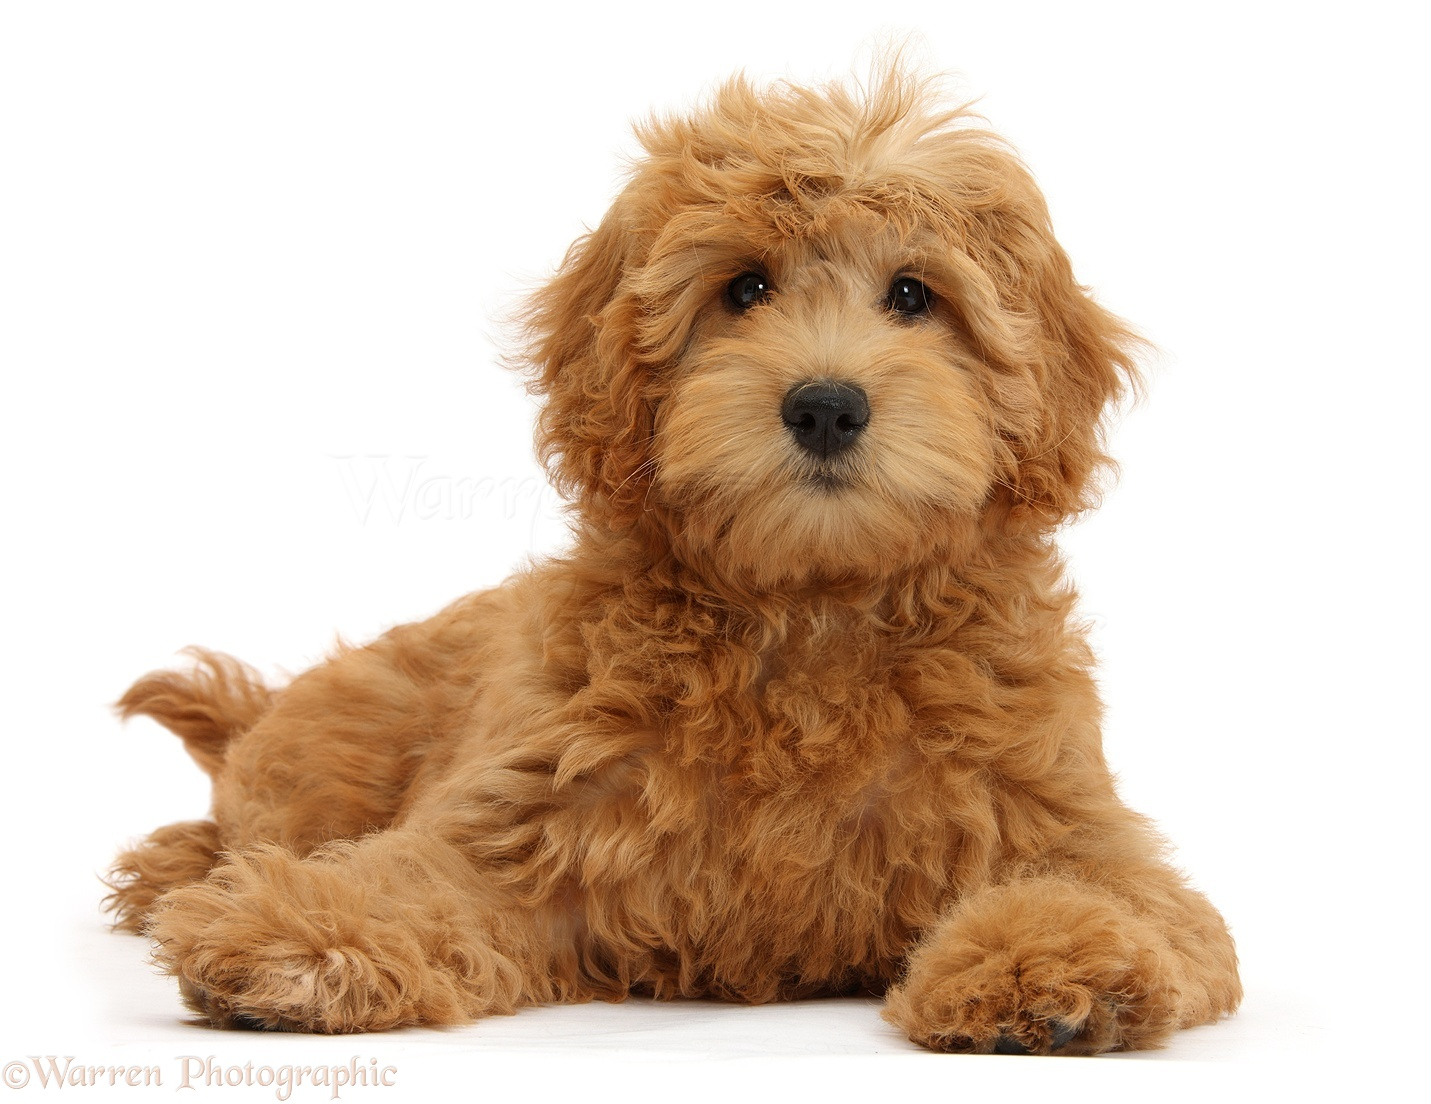 Dog Cute Goldendoodle Puppy Photo Wp39327